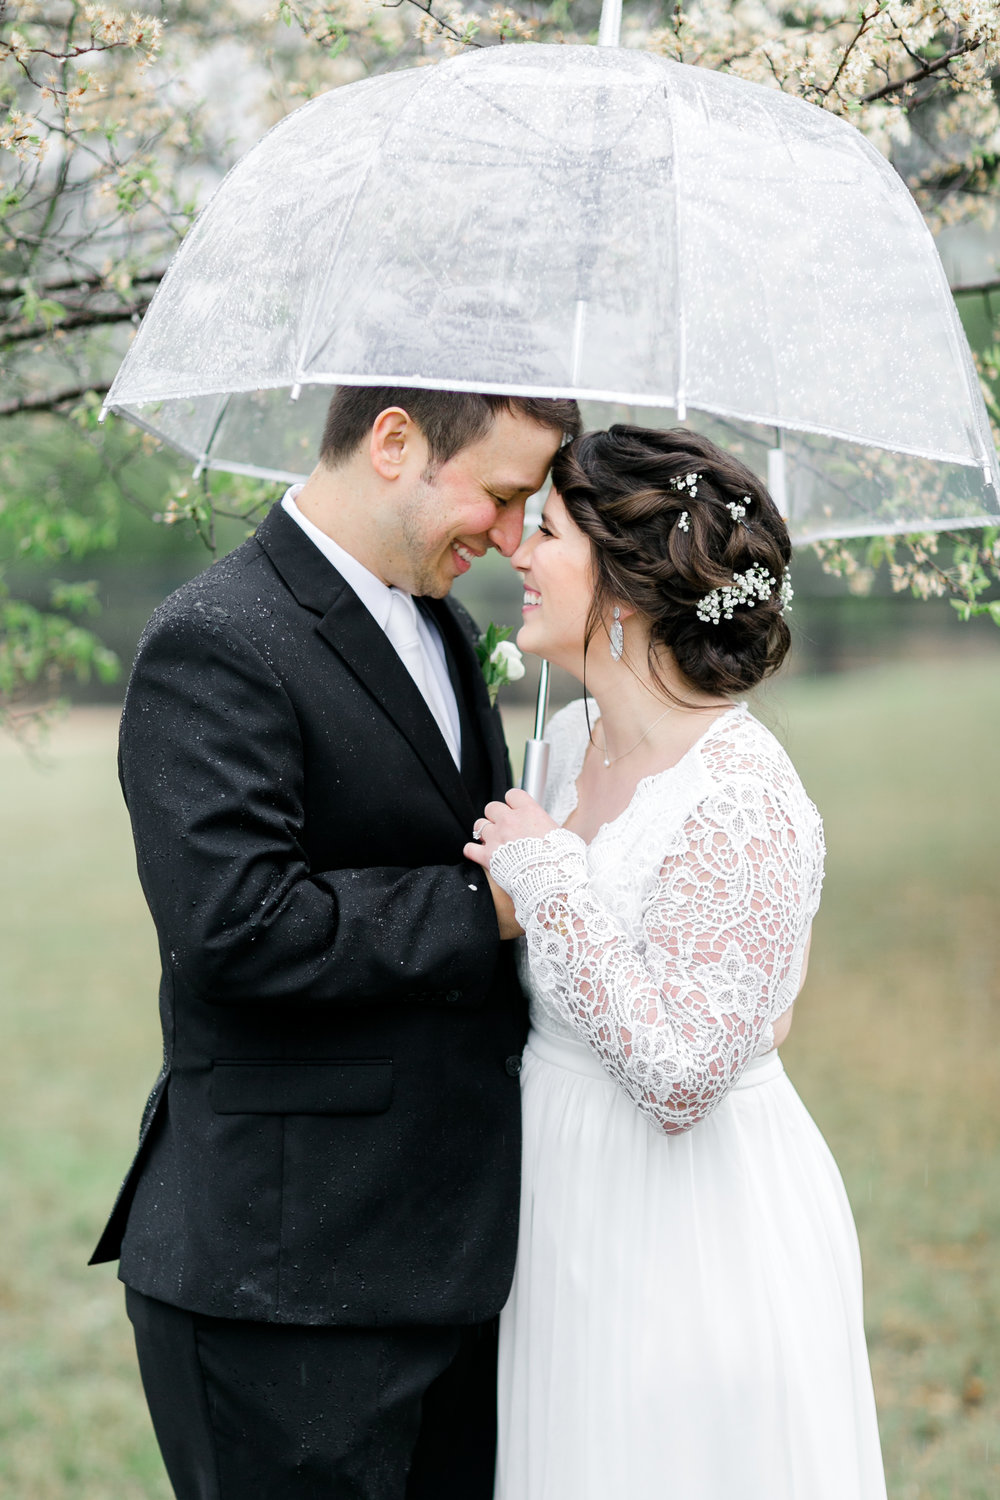 Austin_Texas_Fine_Art_Wedding_Photographer_Kayla_Snell_Photography_Antebellum_Oaks230.jpg